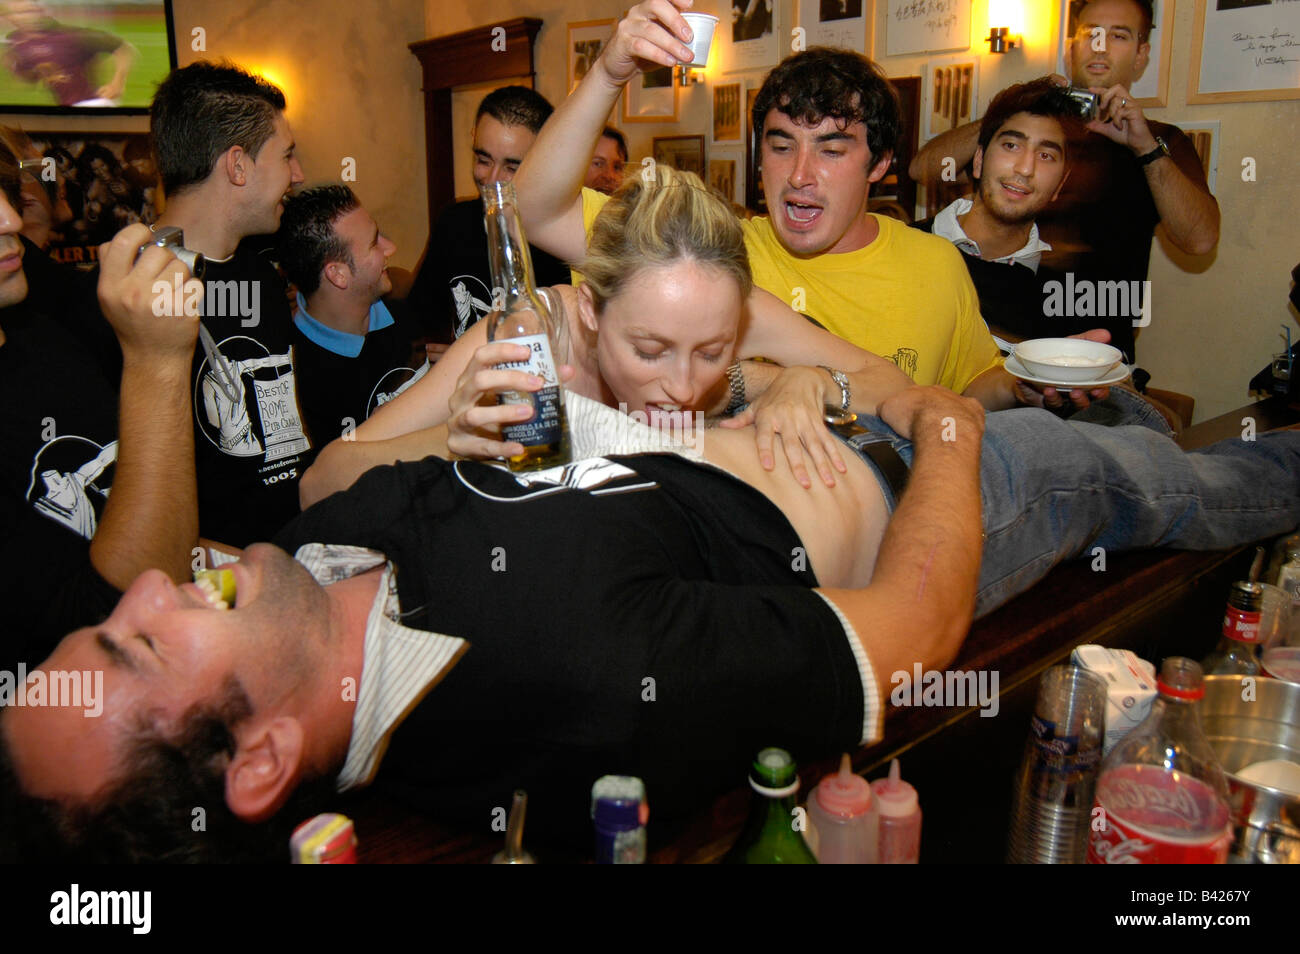 Young people playing drinking games in a bar. - Stock Image